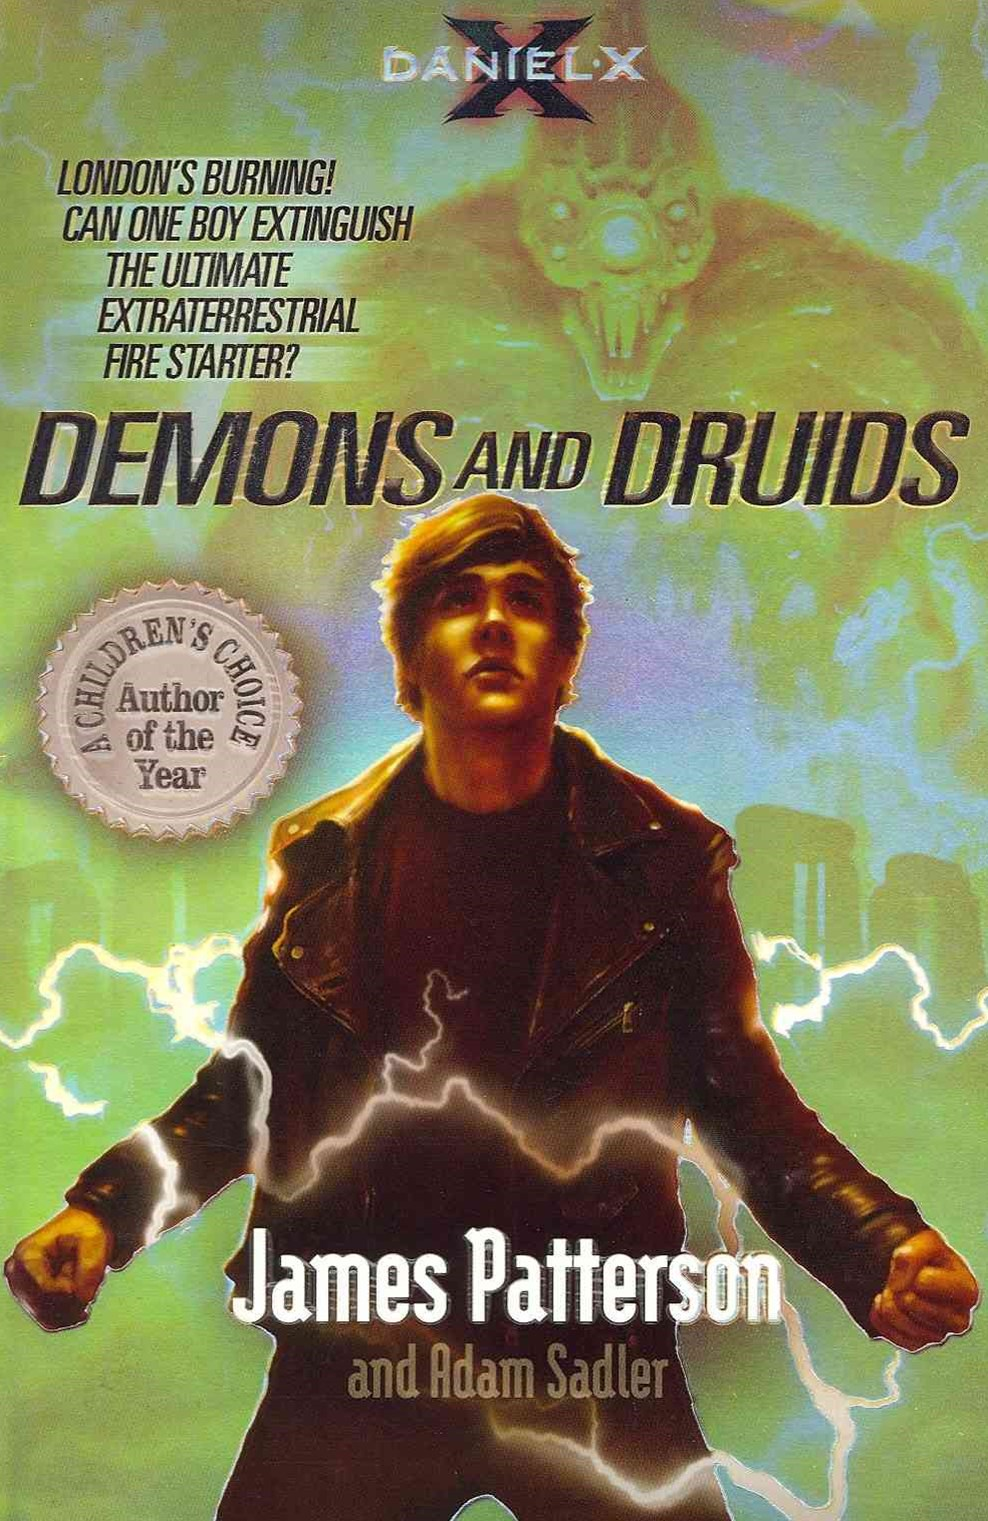 Daniel X: Demons and Druids